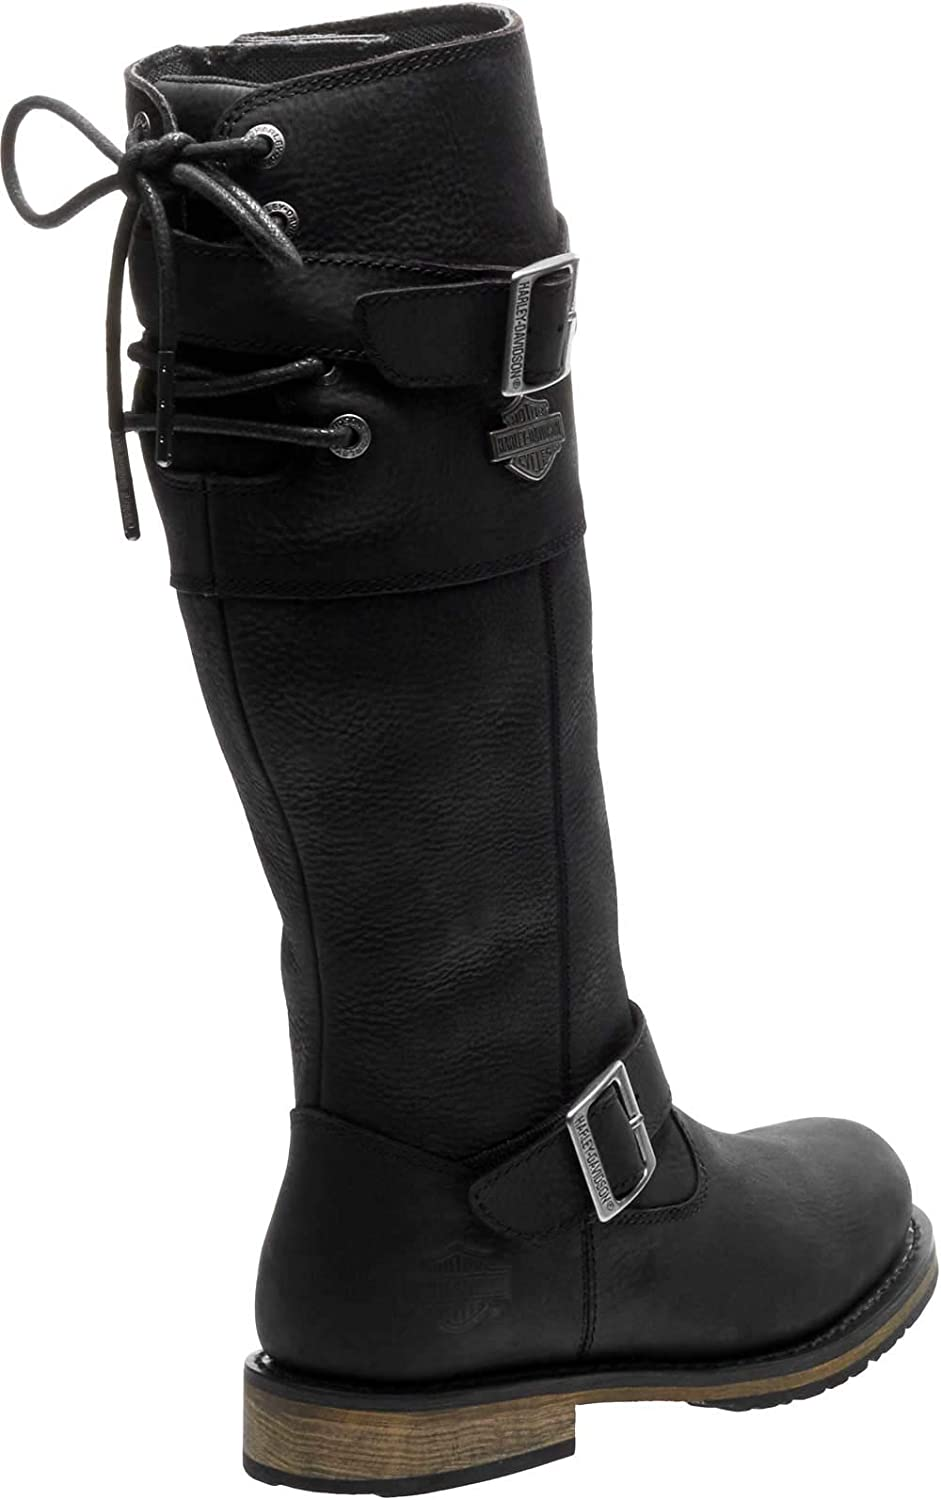 Harley-Davidson Womens Kirtland 14-Inch Motorcycle Boots D87155 D87156